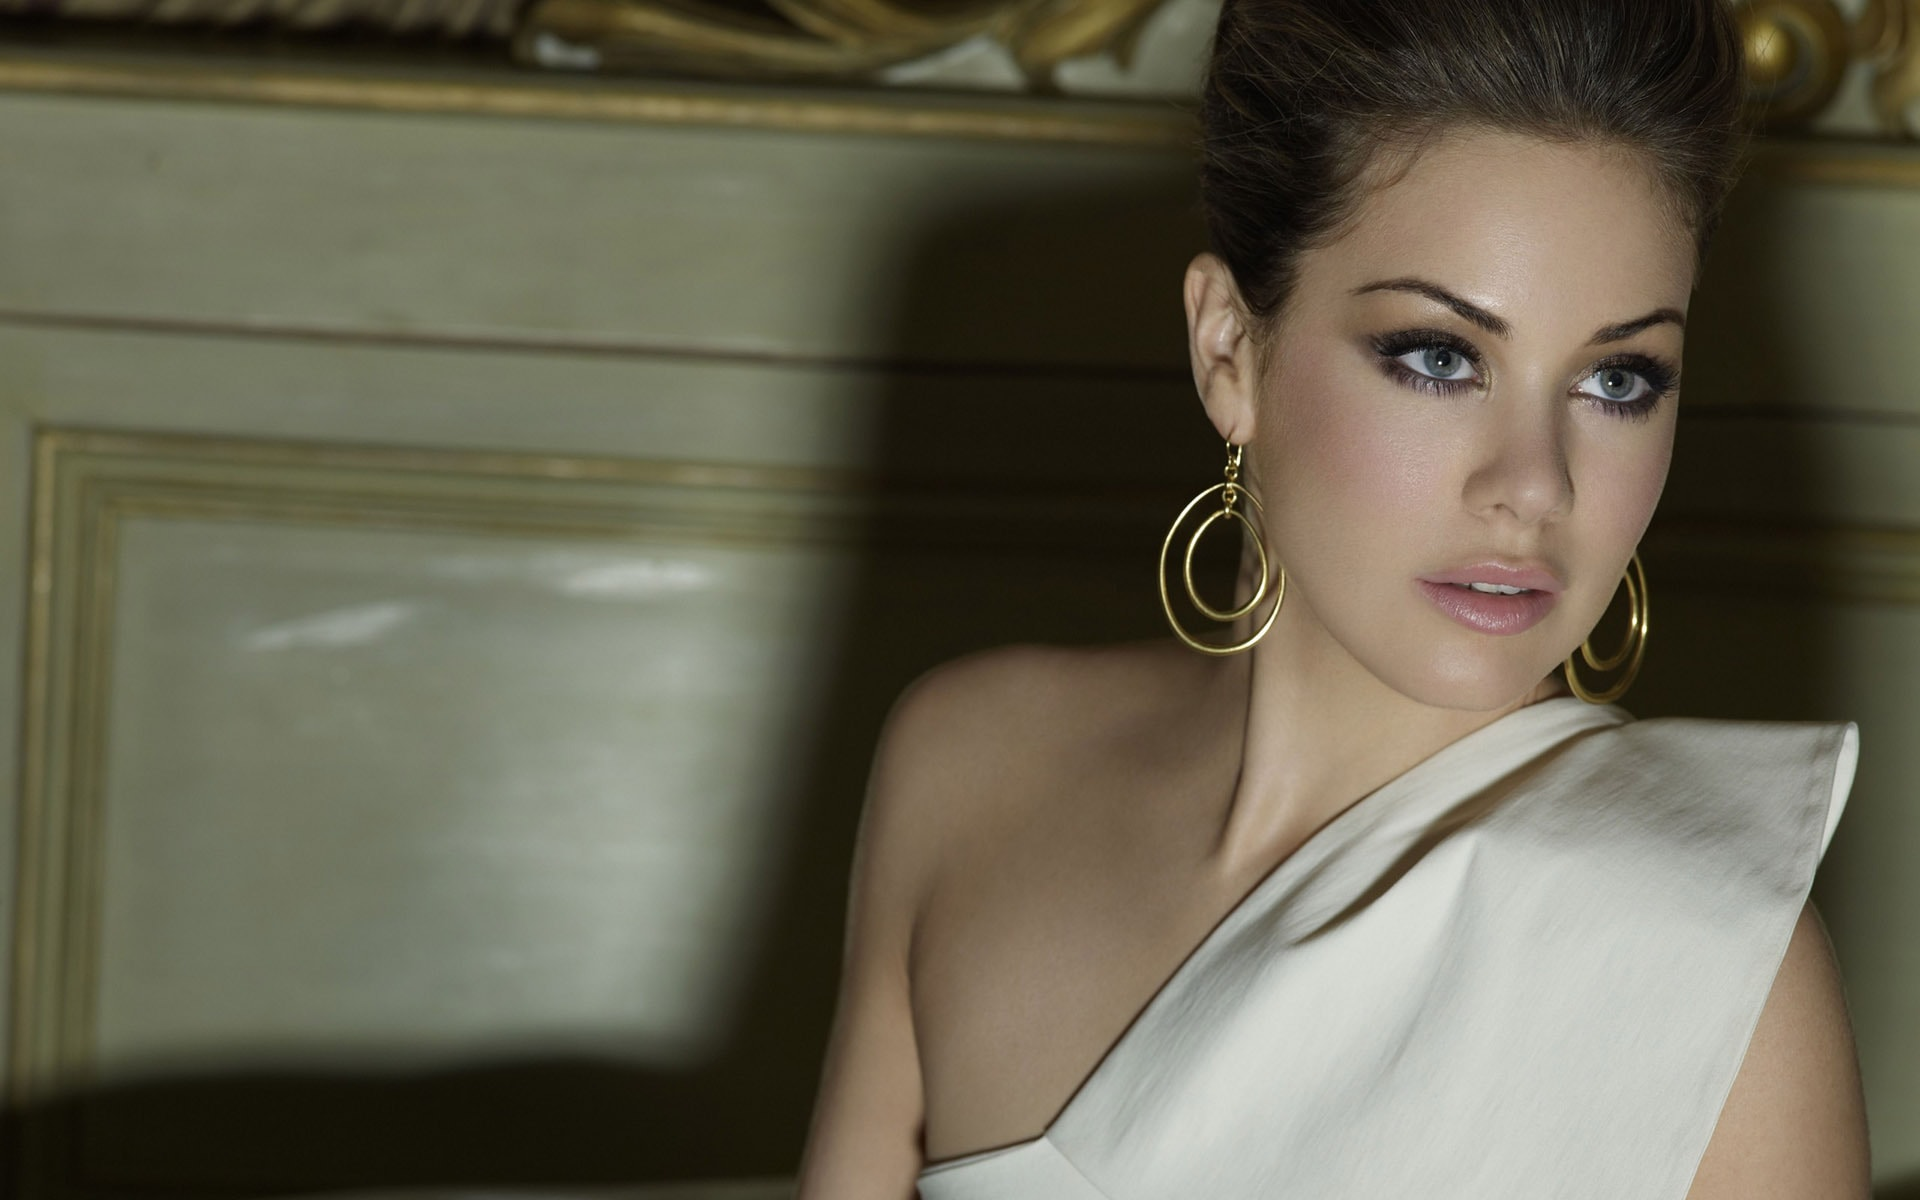 Roxanne McKee (born 1980) Roxanne McKee (born 1980) new images